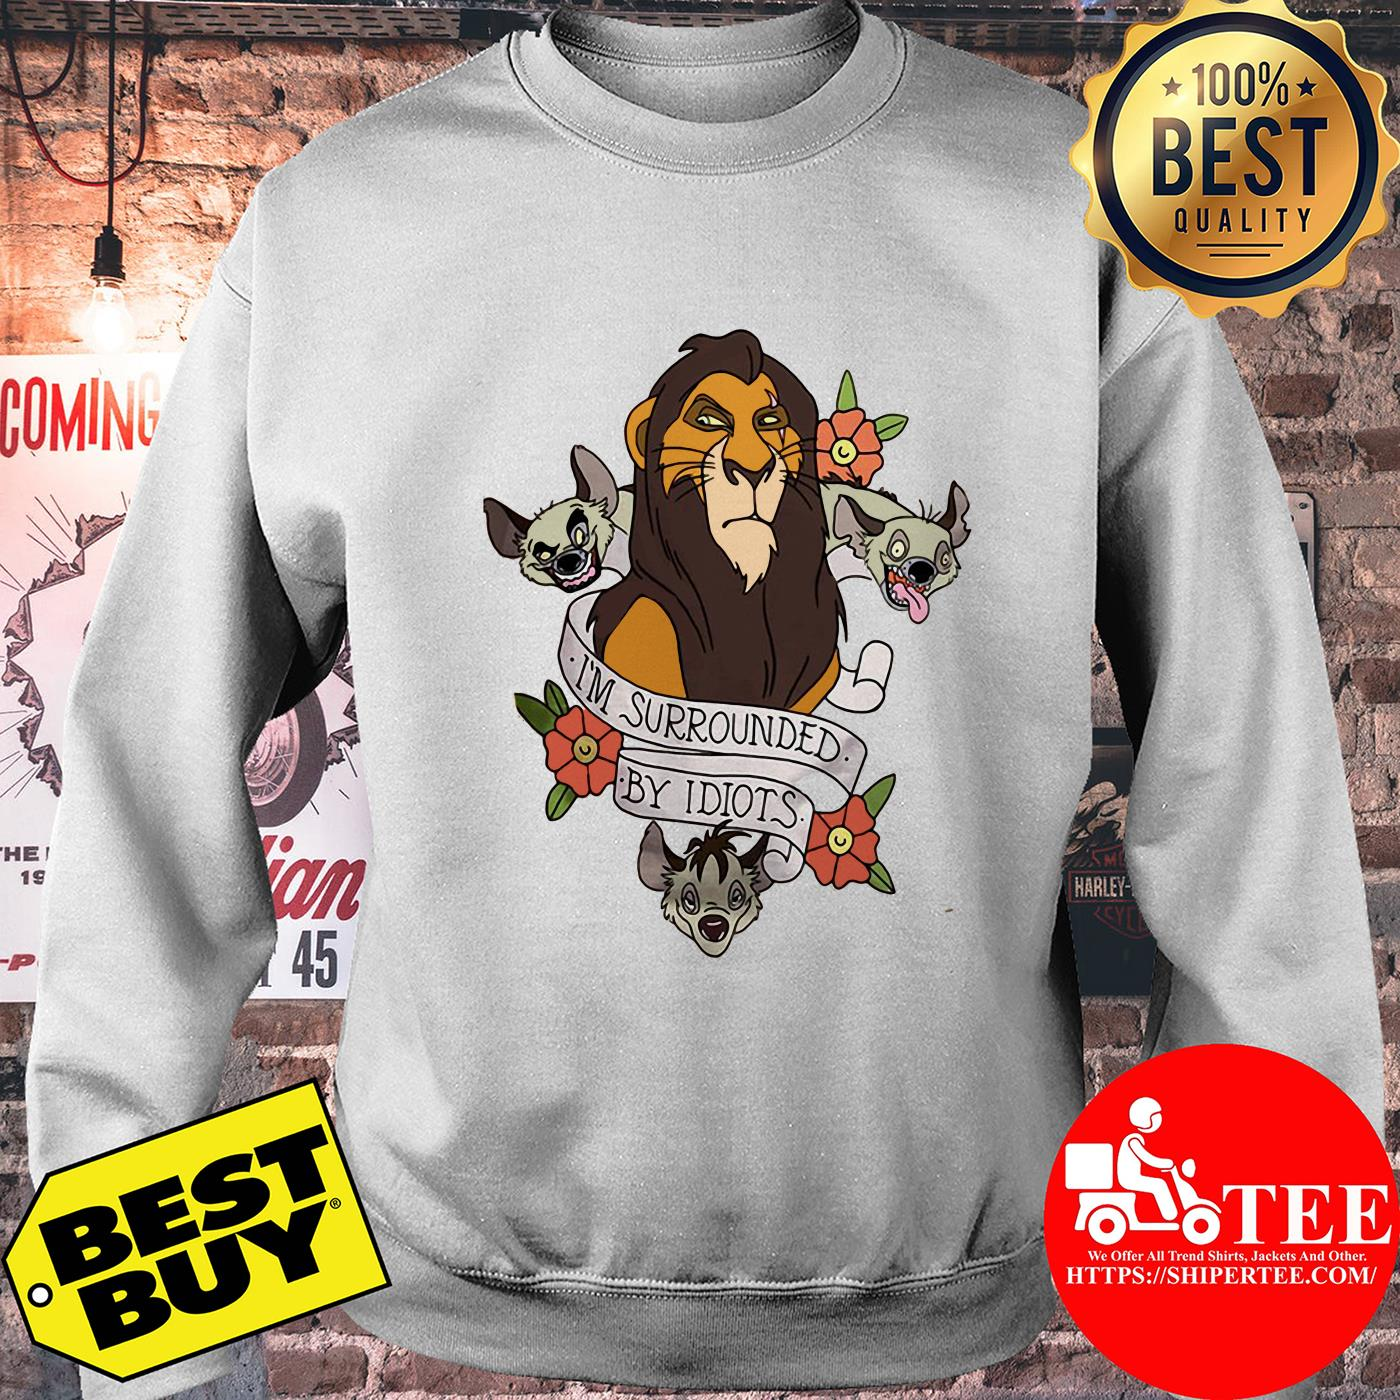 Disney The Lion King Scar Surrounded by Idiots Tattoo Flowers sweatshirt